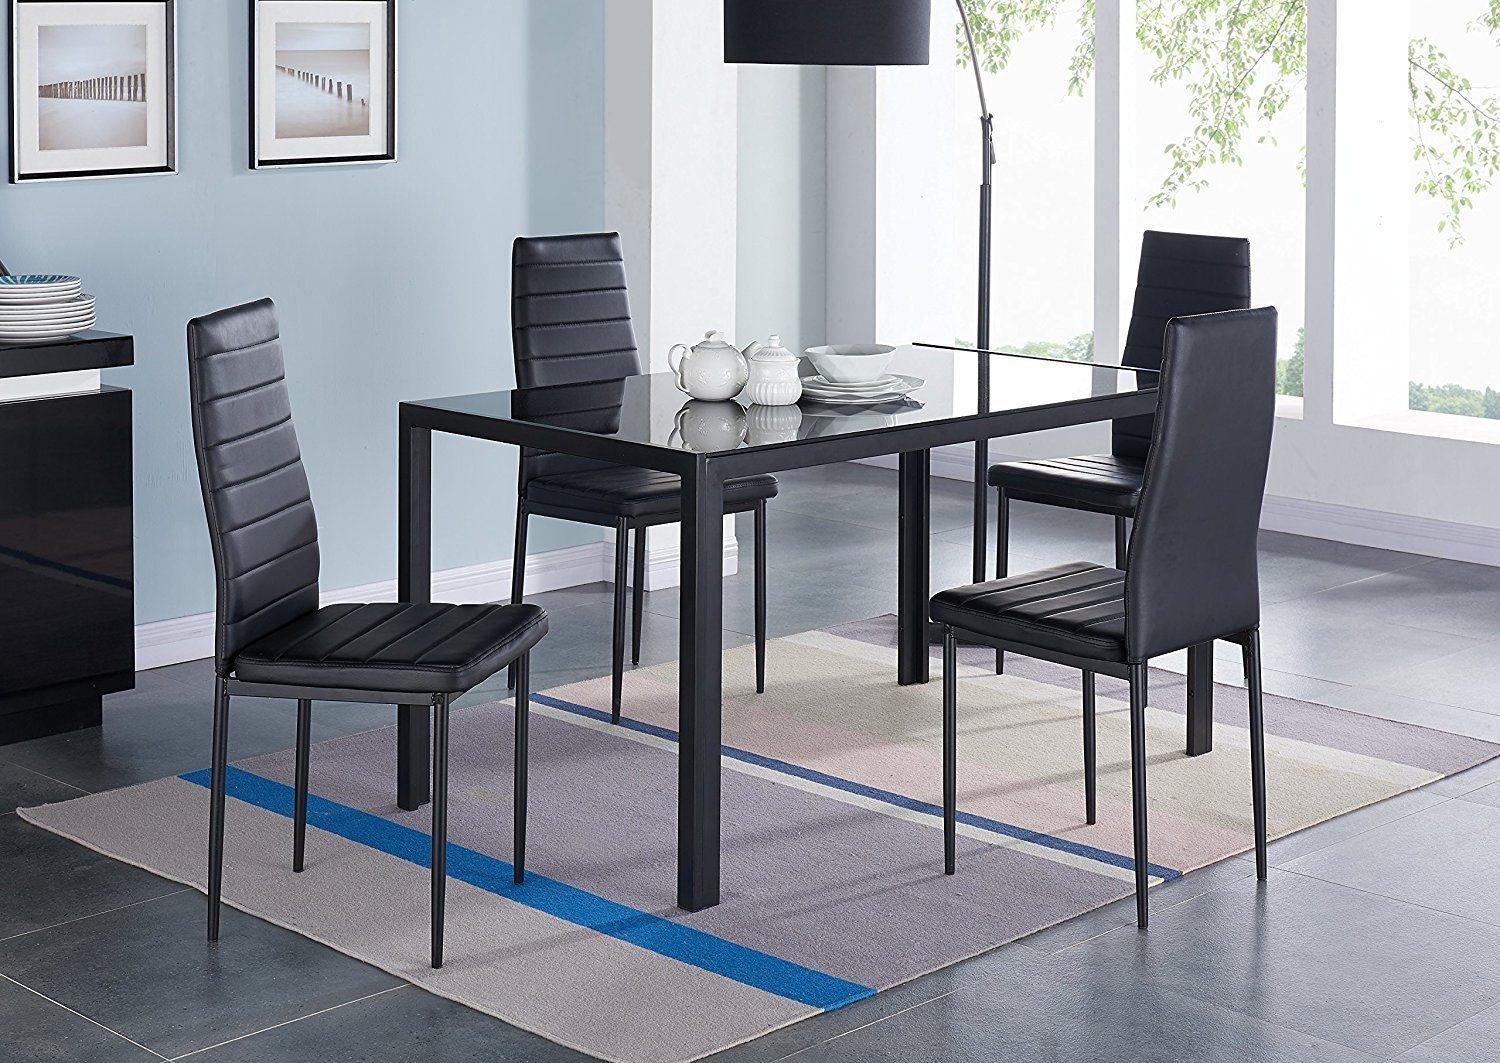 Compact 5 Piece Dining Set Throughout Newest Linette 5 Piece Dining Table Sets (Image 7 of 20)